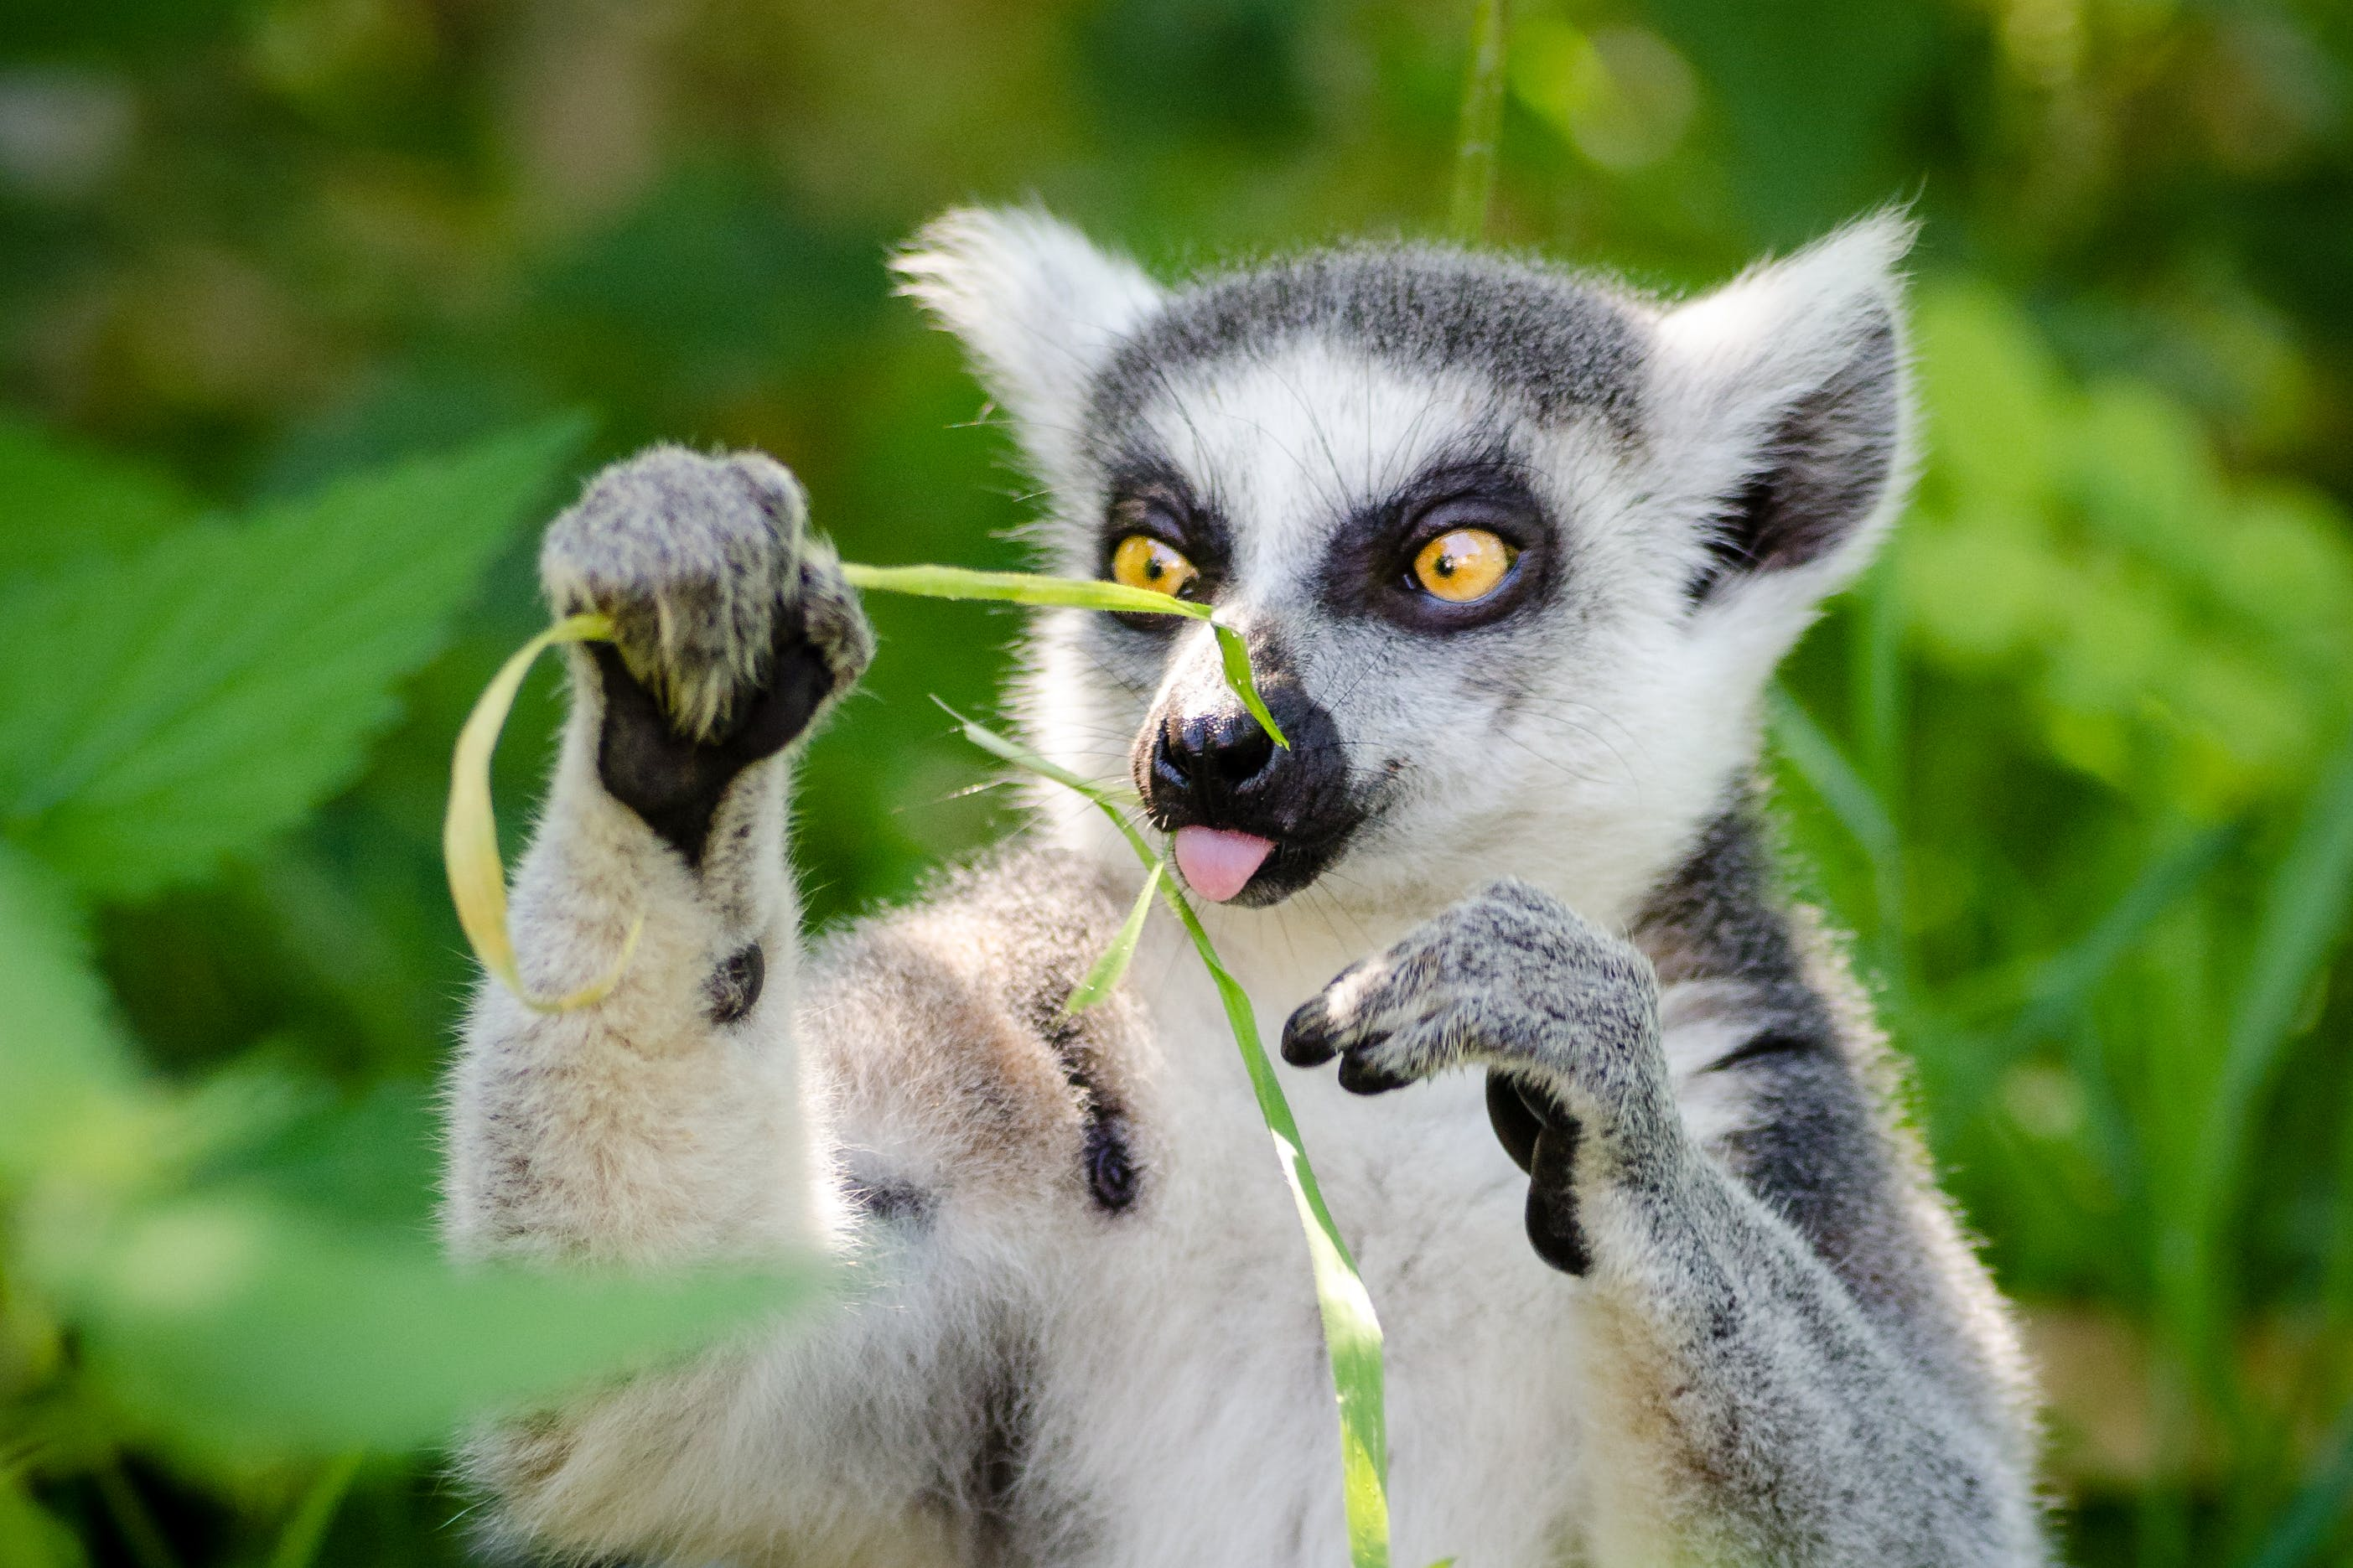 White and Gray Lemur Holding Grass